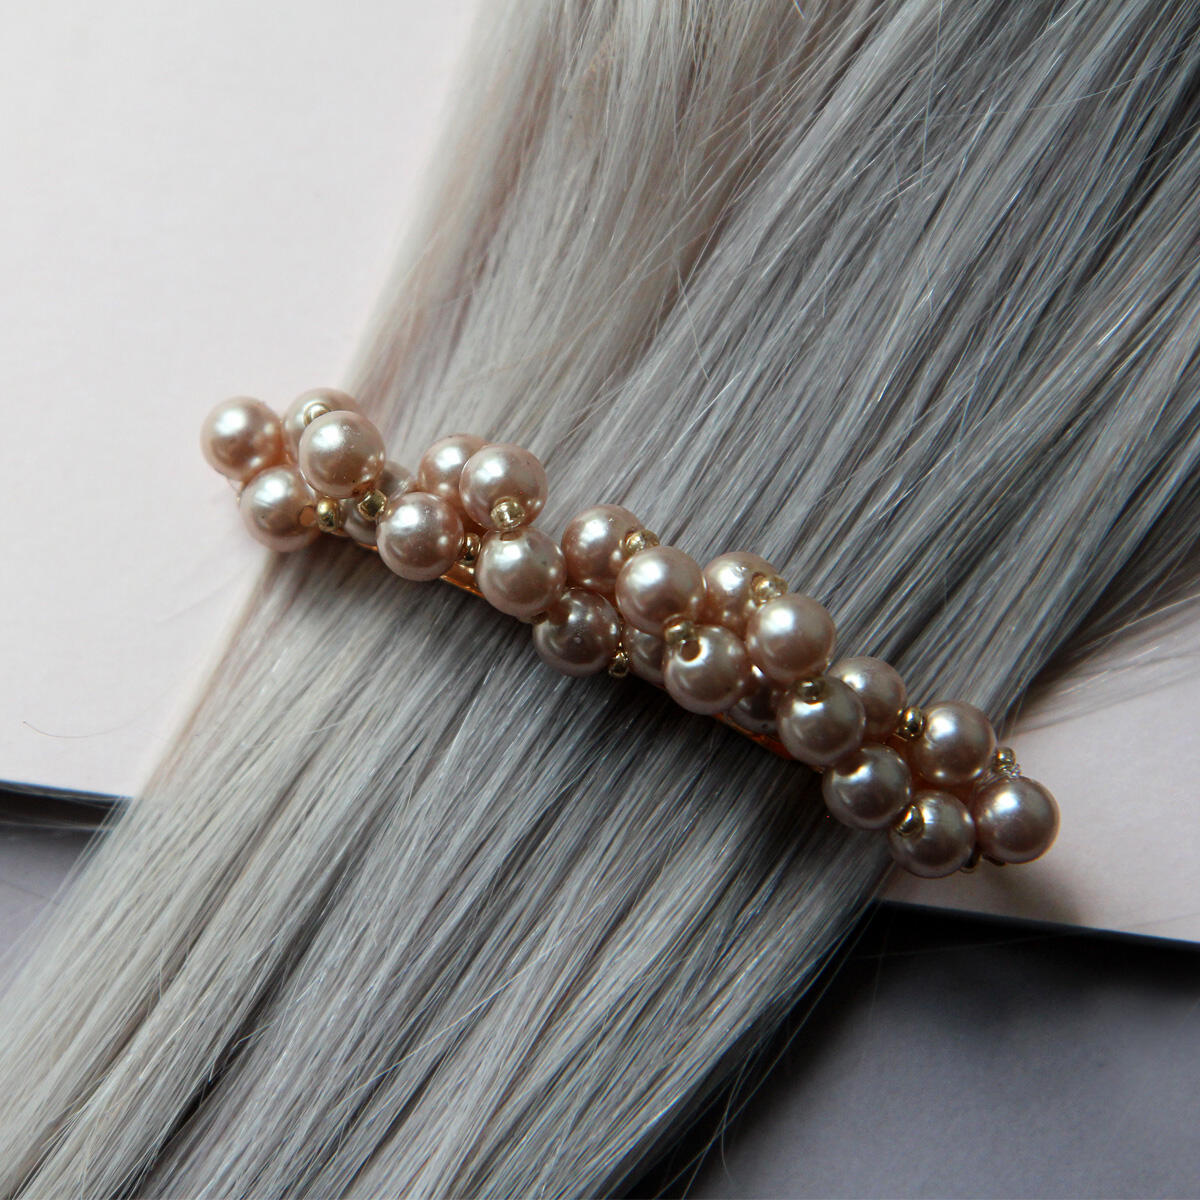 Hair slide with brown pearls Pearl Collection no. 12 null